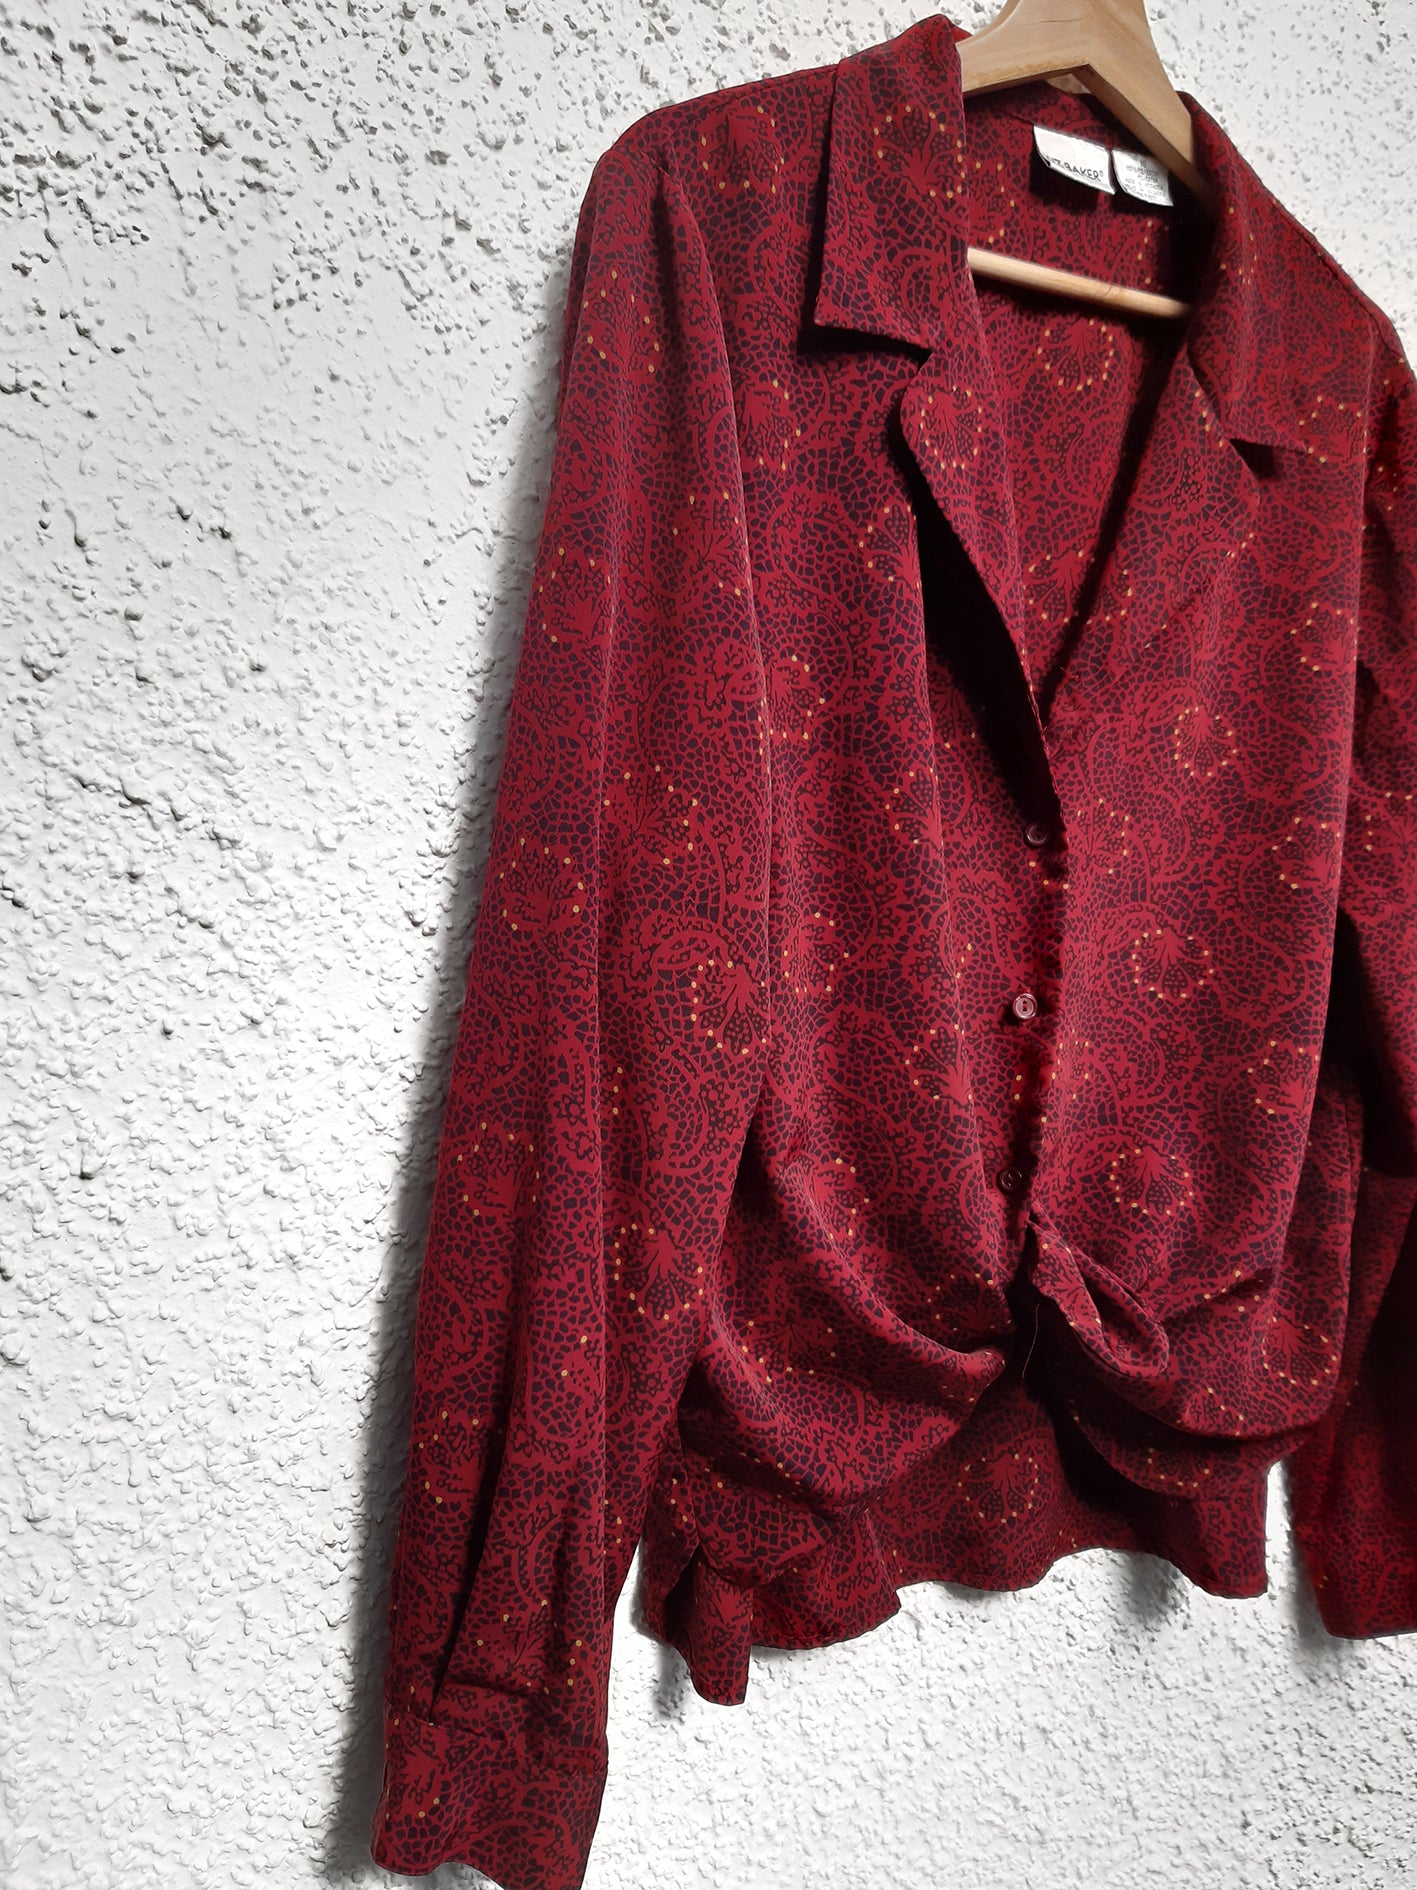 JOYA LOCAL, BLUSA VINTAGE ROJA